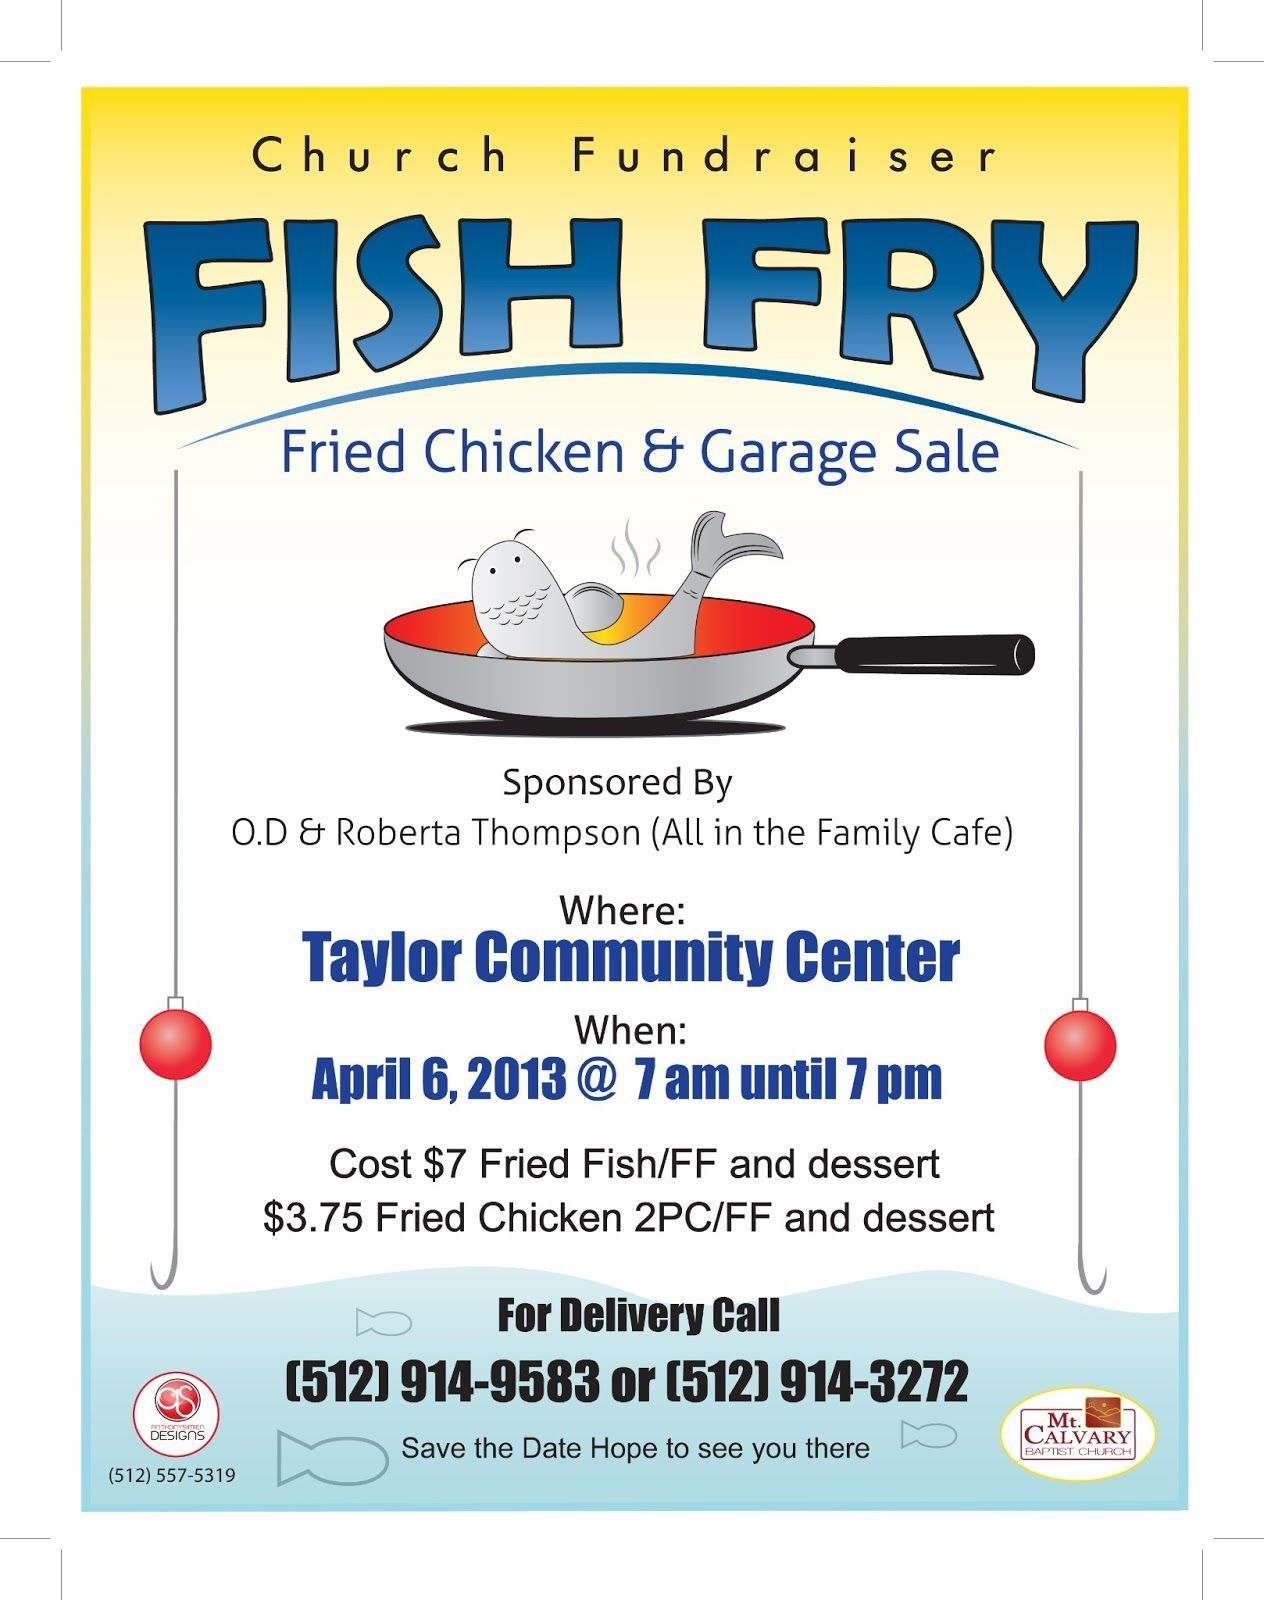 007 Fascinating Fish Fry Flyer Template Design  Printable Free Powerpoint PsdFull